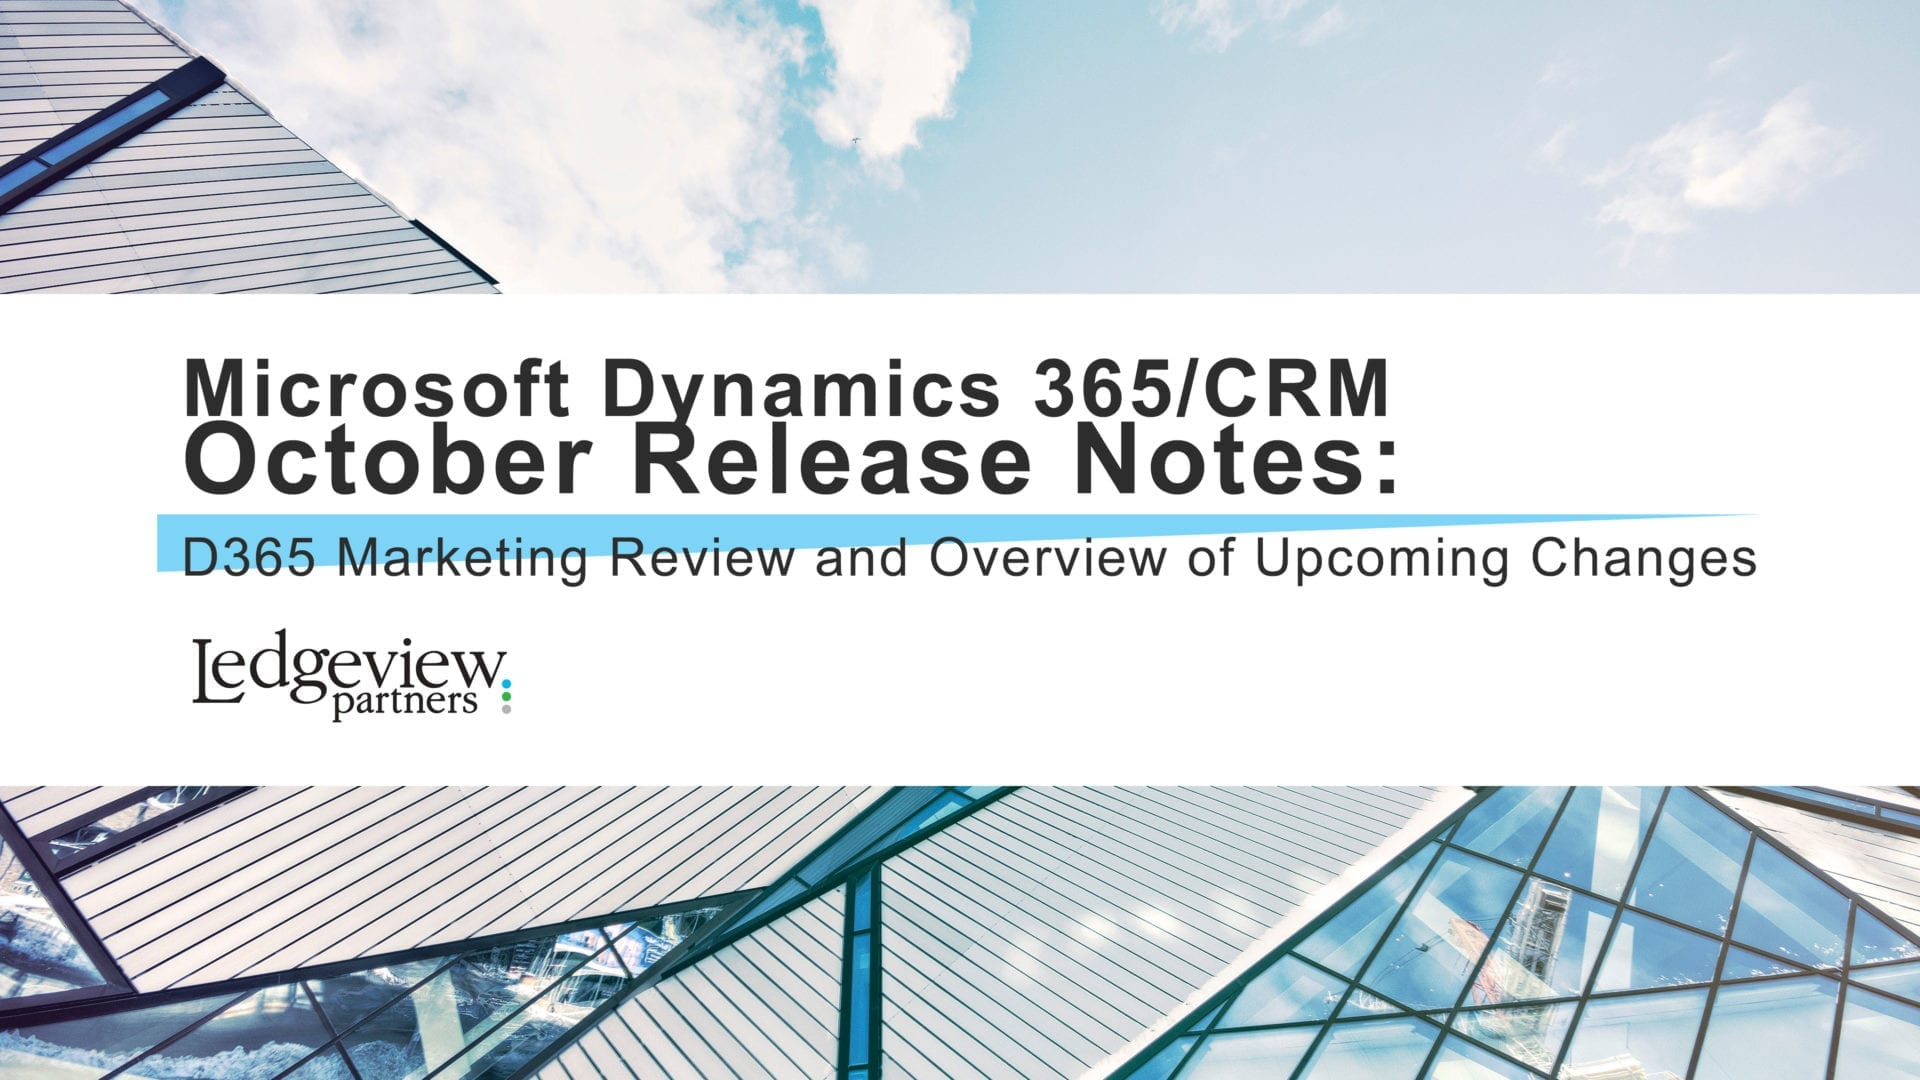 Microsoft Dynamics 365 Crm October Release Notes D365 Marketing Review And Overview Of Upcoming